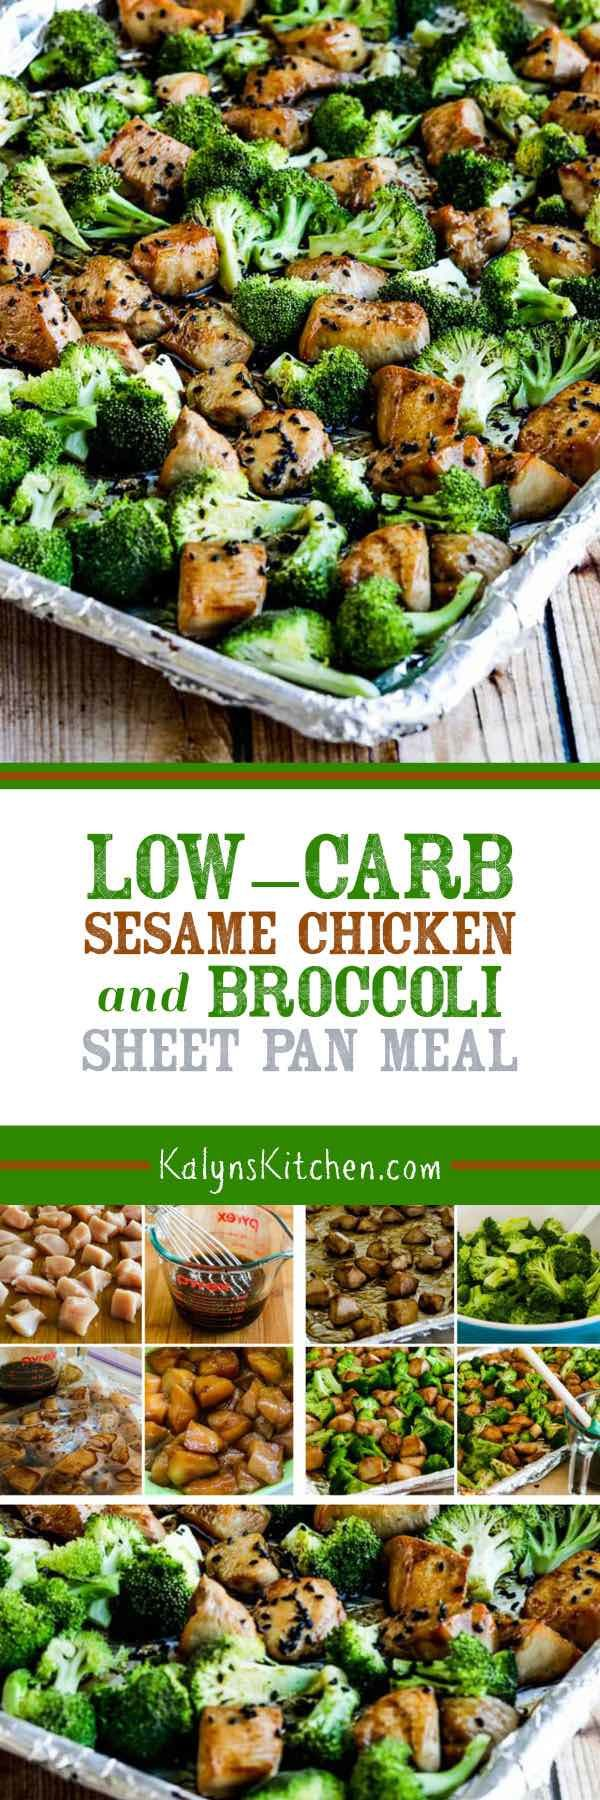 Low-Carb Sesame Chicken and Broccoli Sheet Pan Meal found on KalynsKitchen.com